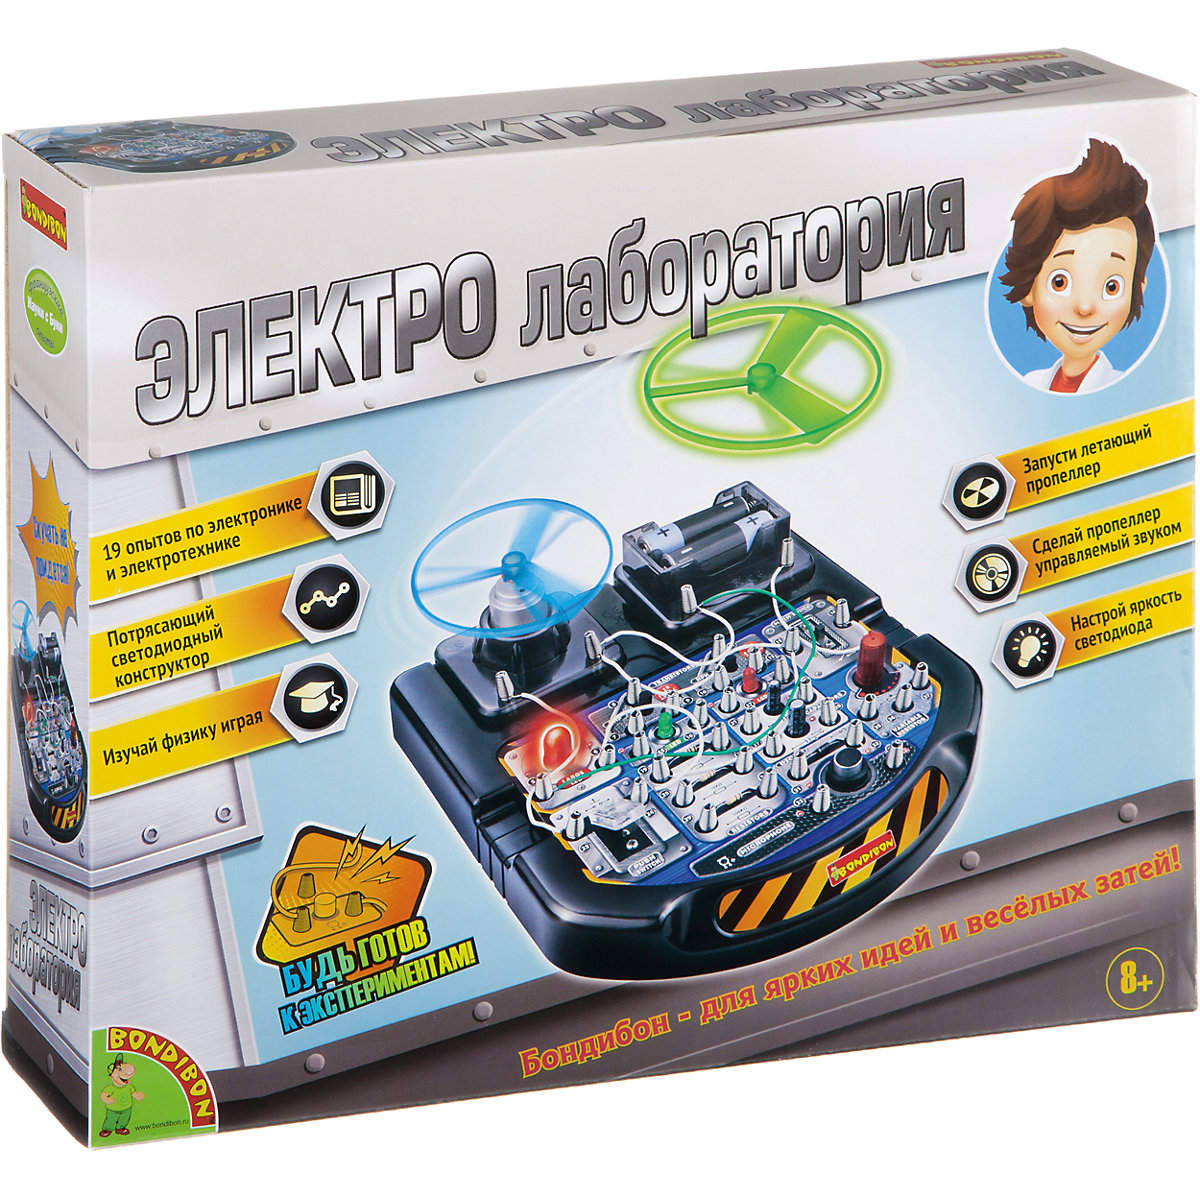 BONDIBON Science 7420053 Experiments for children Educational toys Kids Scientific game toy games MTpromo bondibon science 4992993 experiments for children educational toys training toy learning